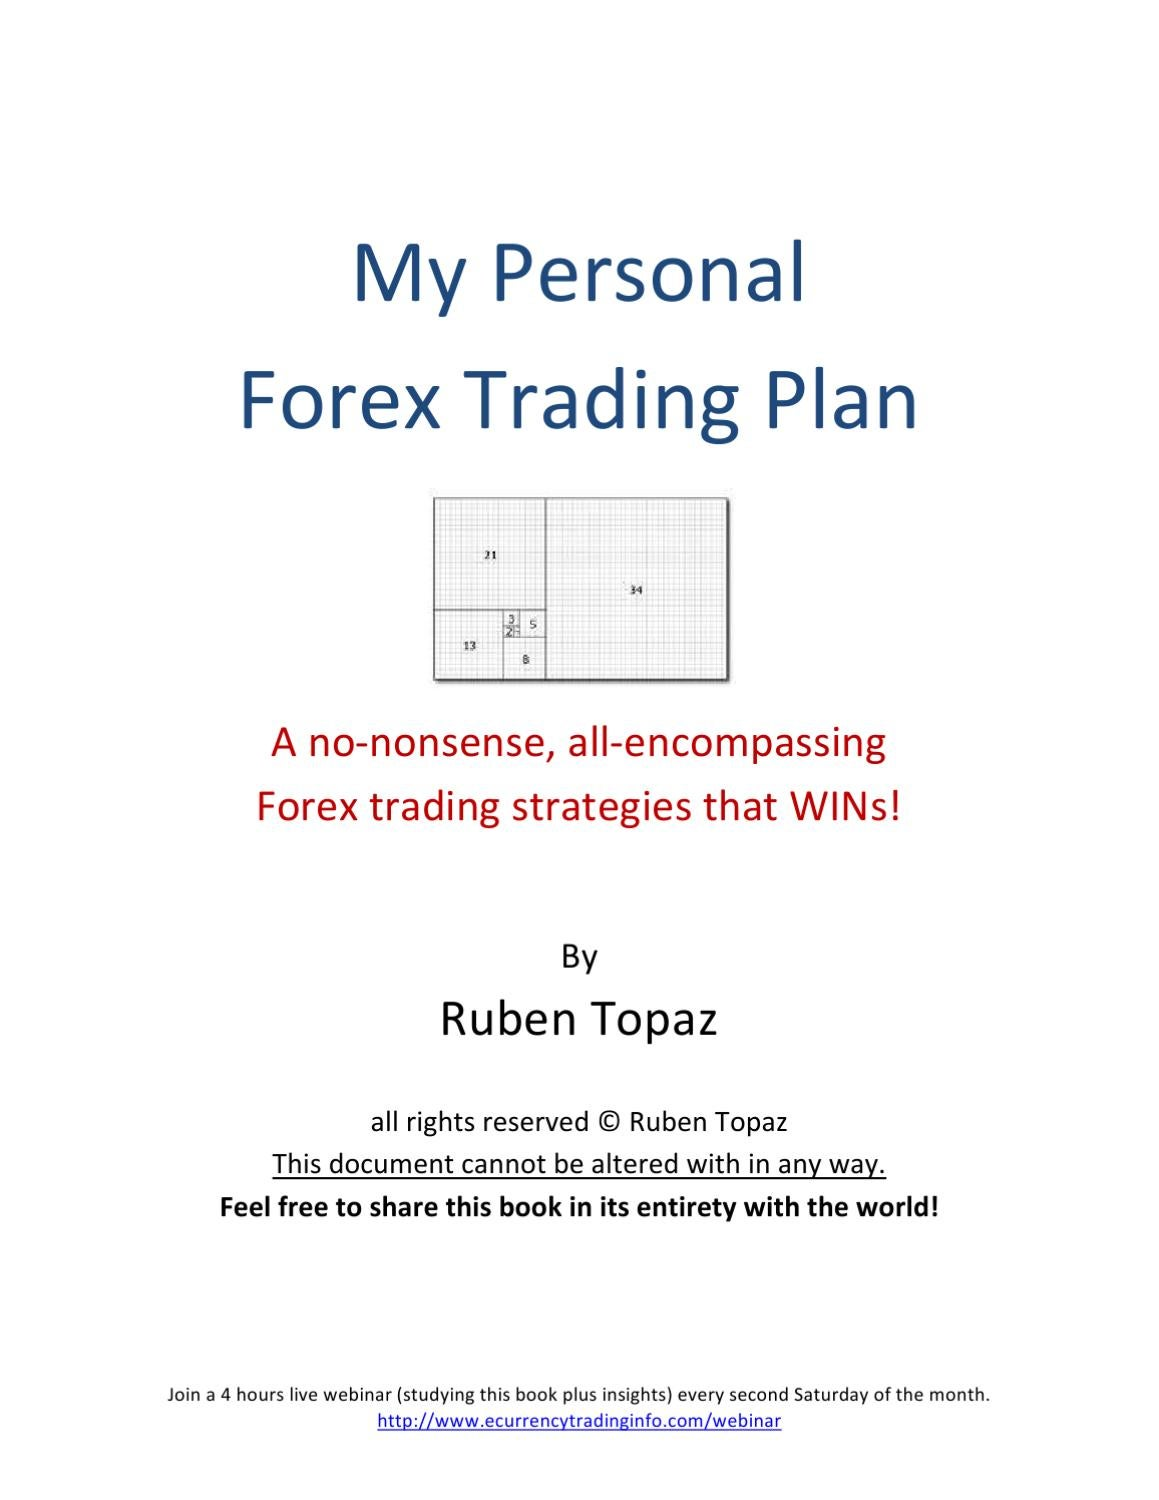 Moving Average Strategies for Forex Trading